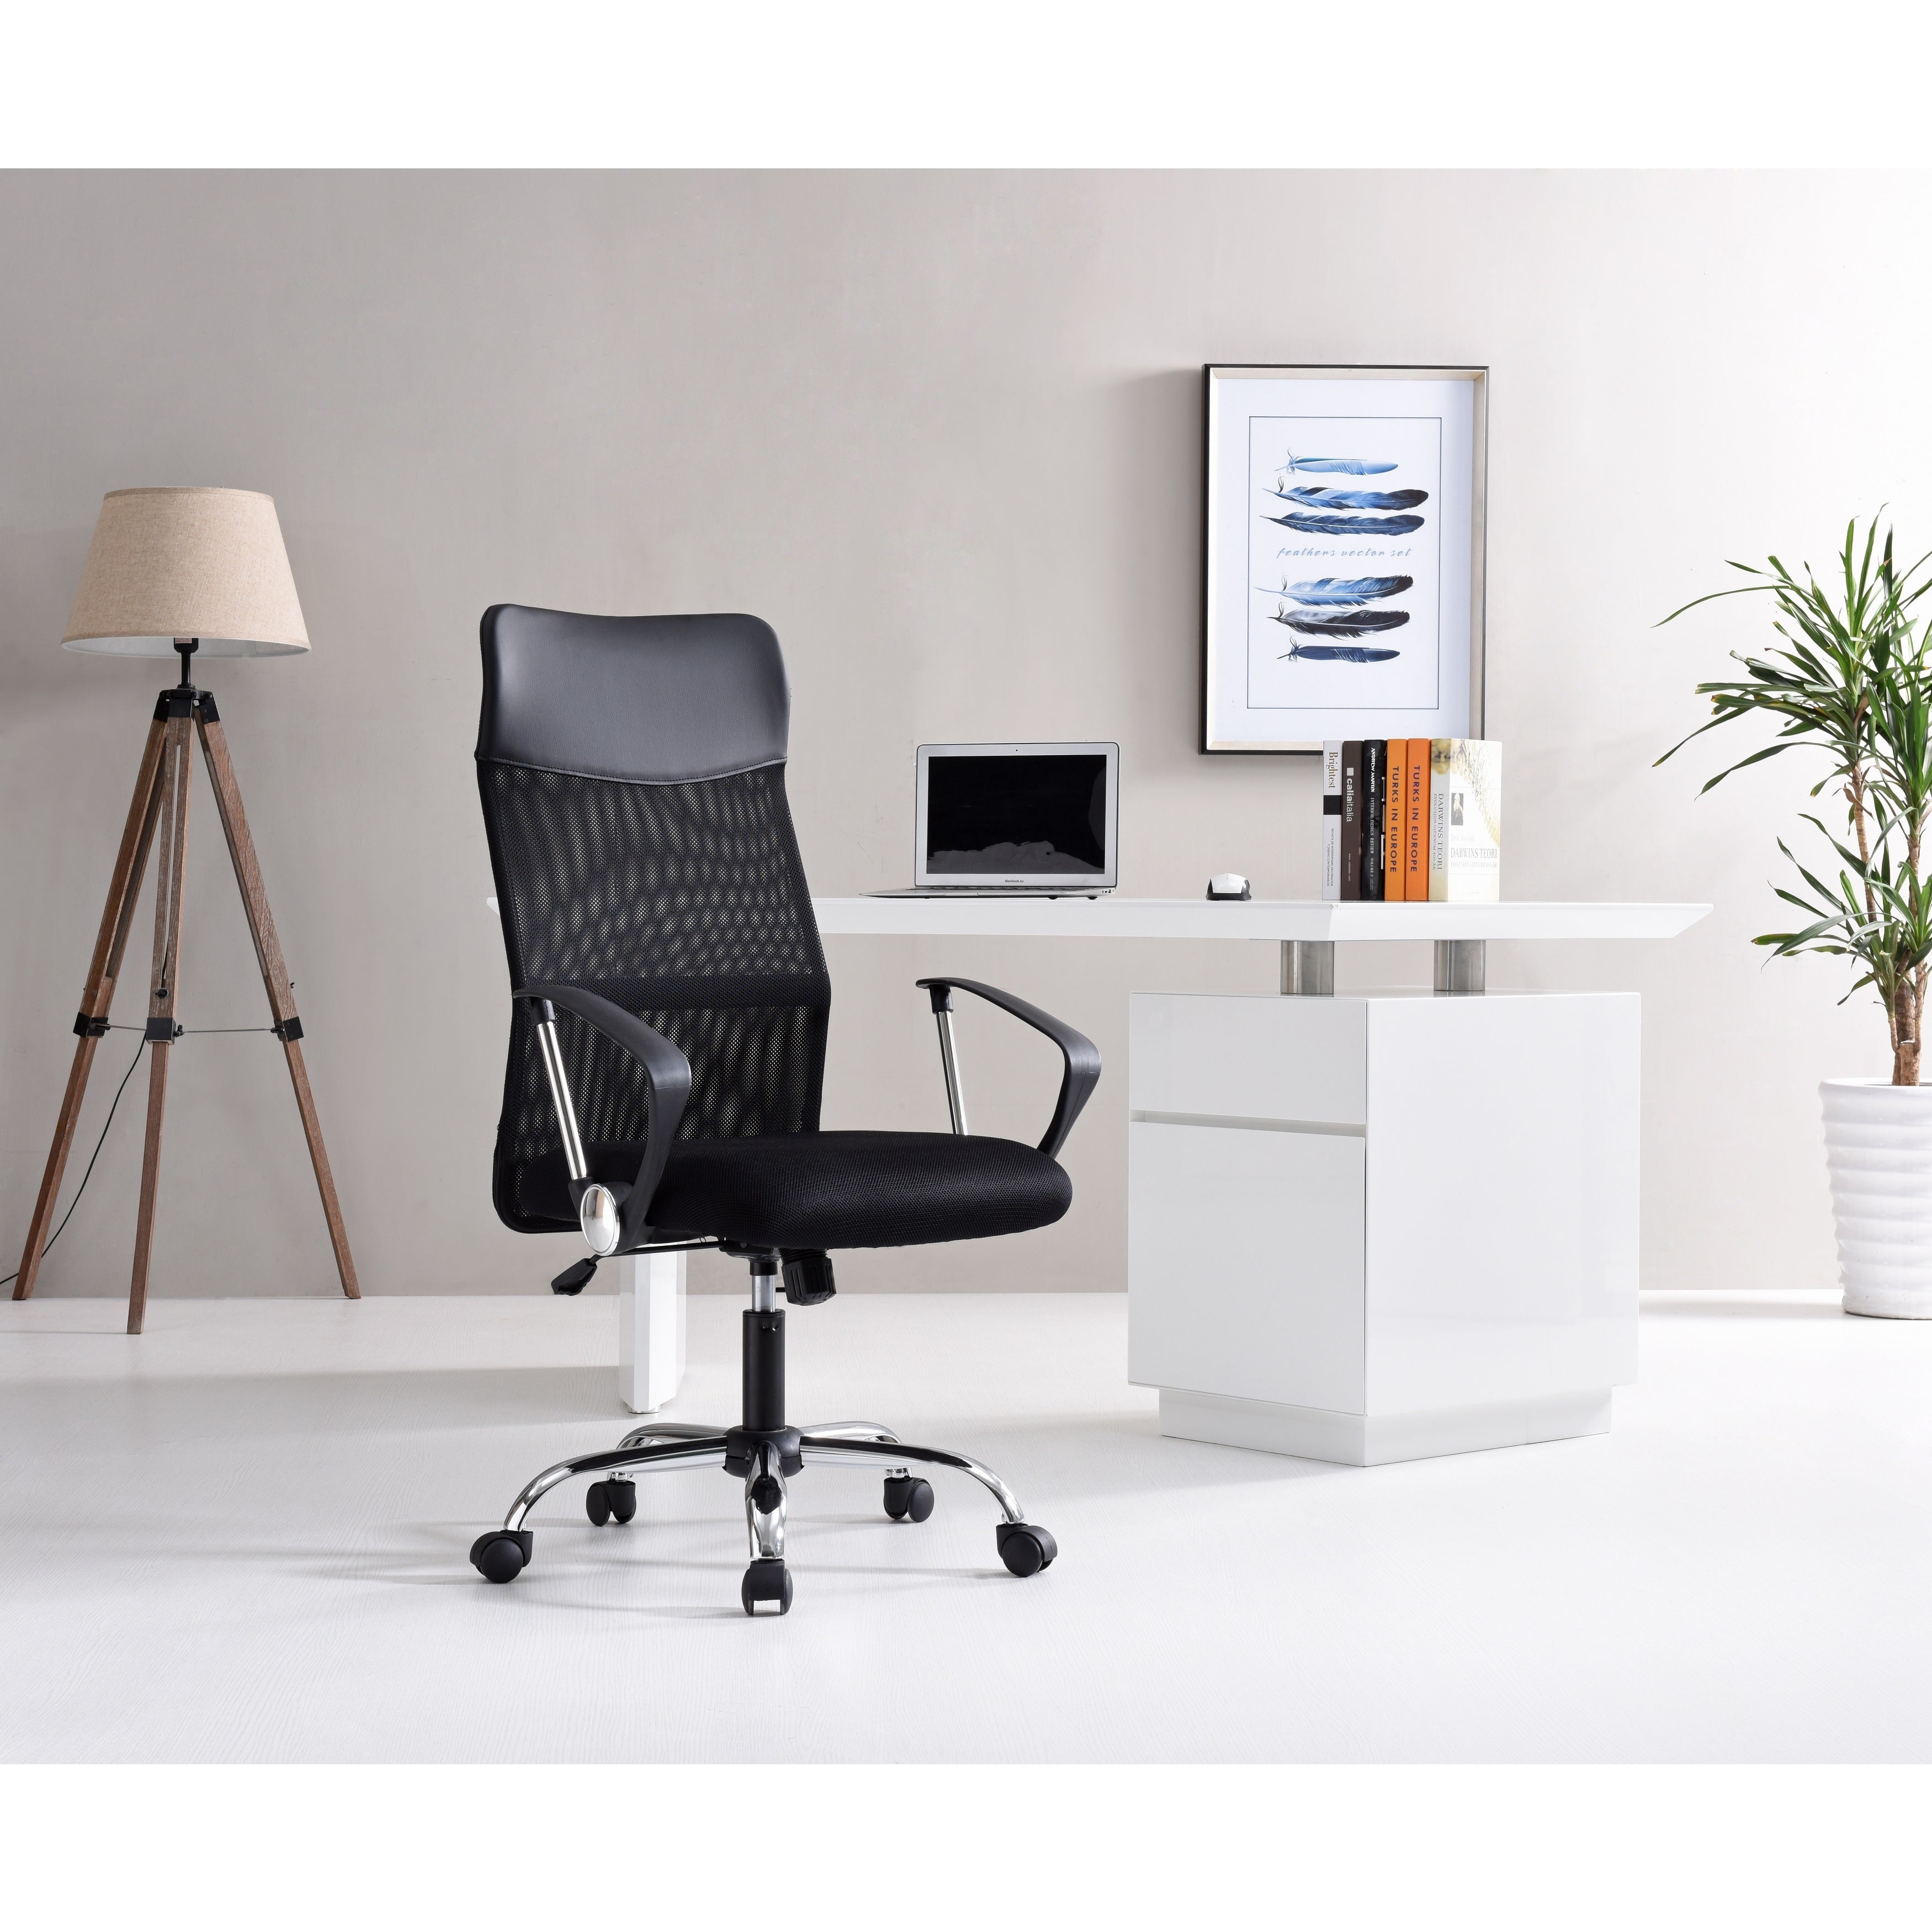 Image of: Shop Black Mesh Adjustable Height Swivel Rolling Office Chair Overstock 9056264